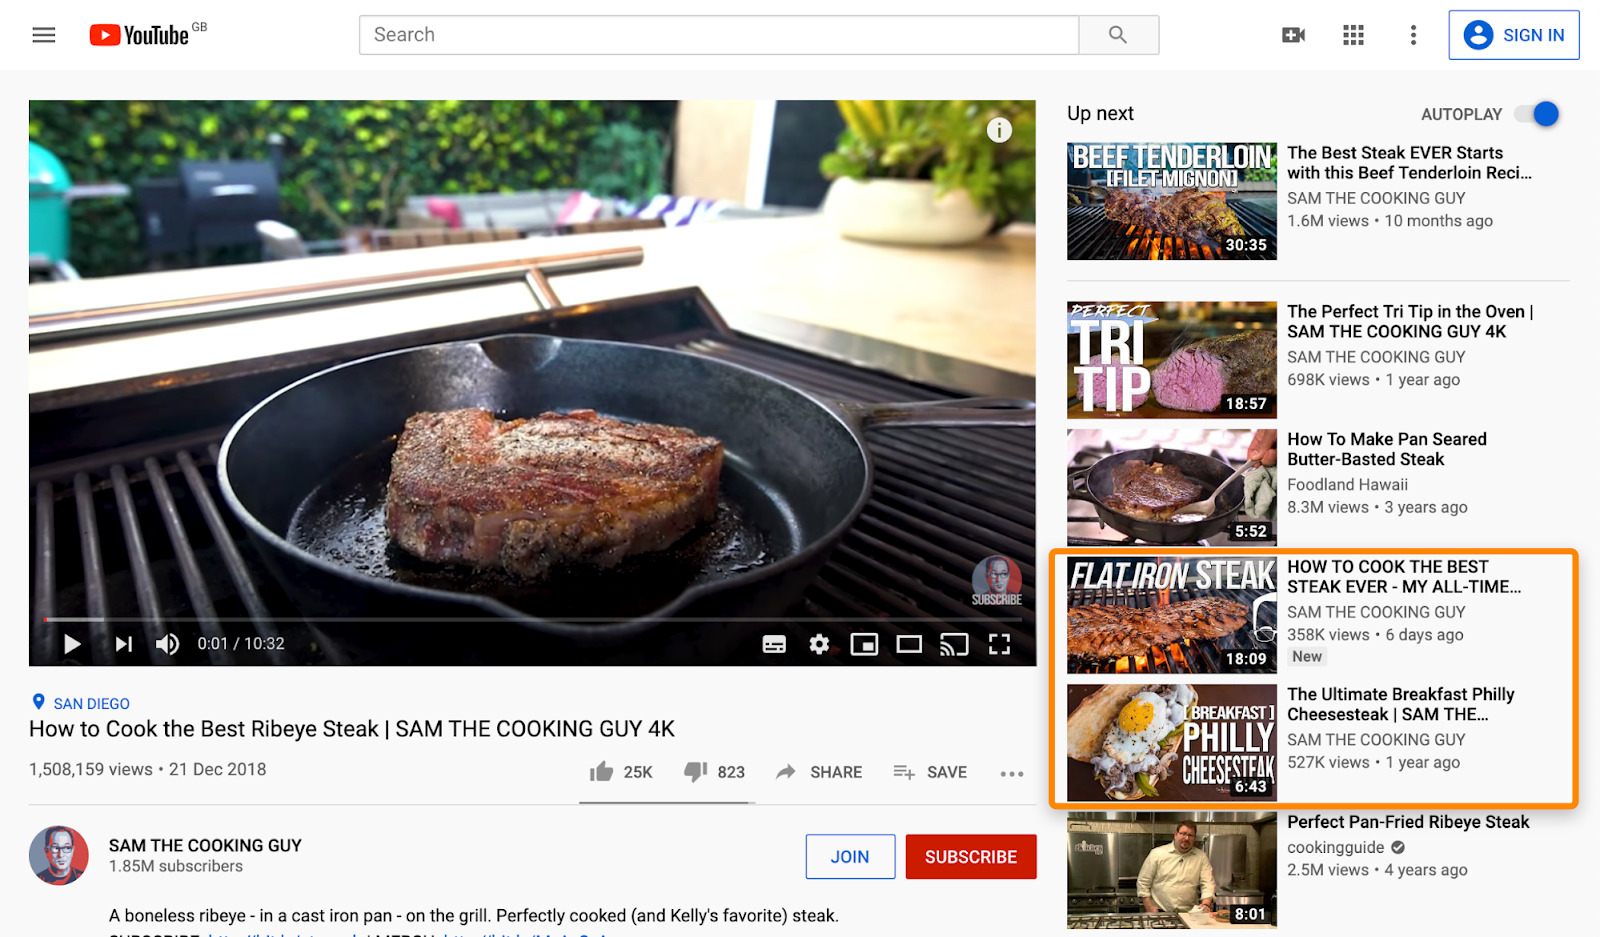 3 youtube steak recipes sidebar